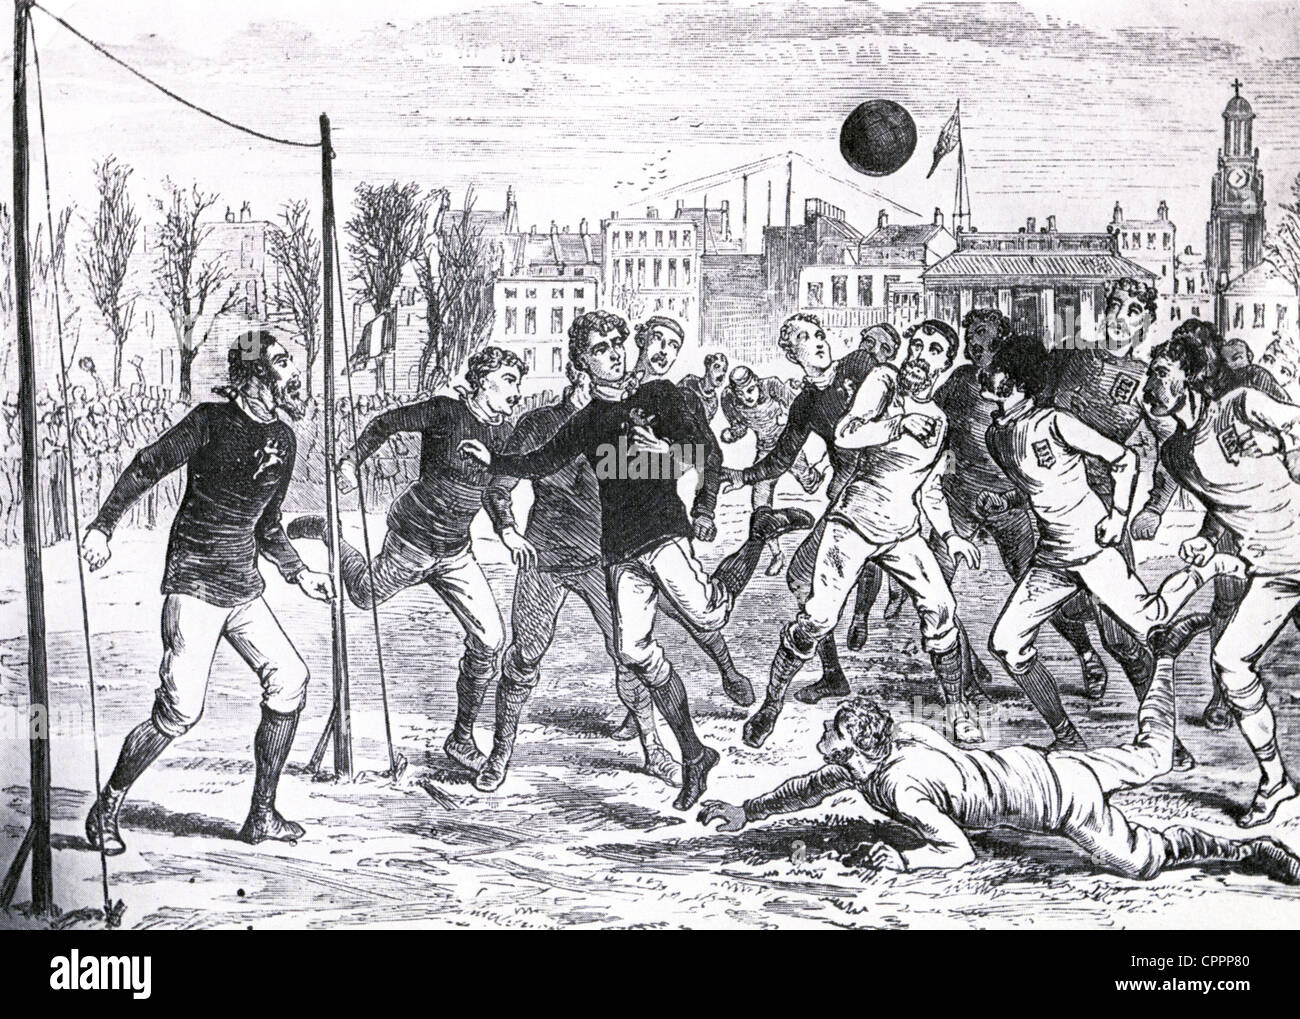 FOOTBALL: 1878 England v Scotland at the Oval which Scotland won 7-2 - Stock Image